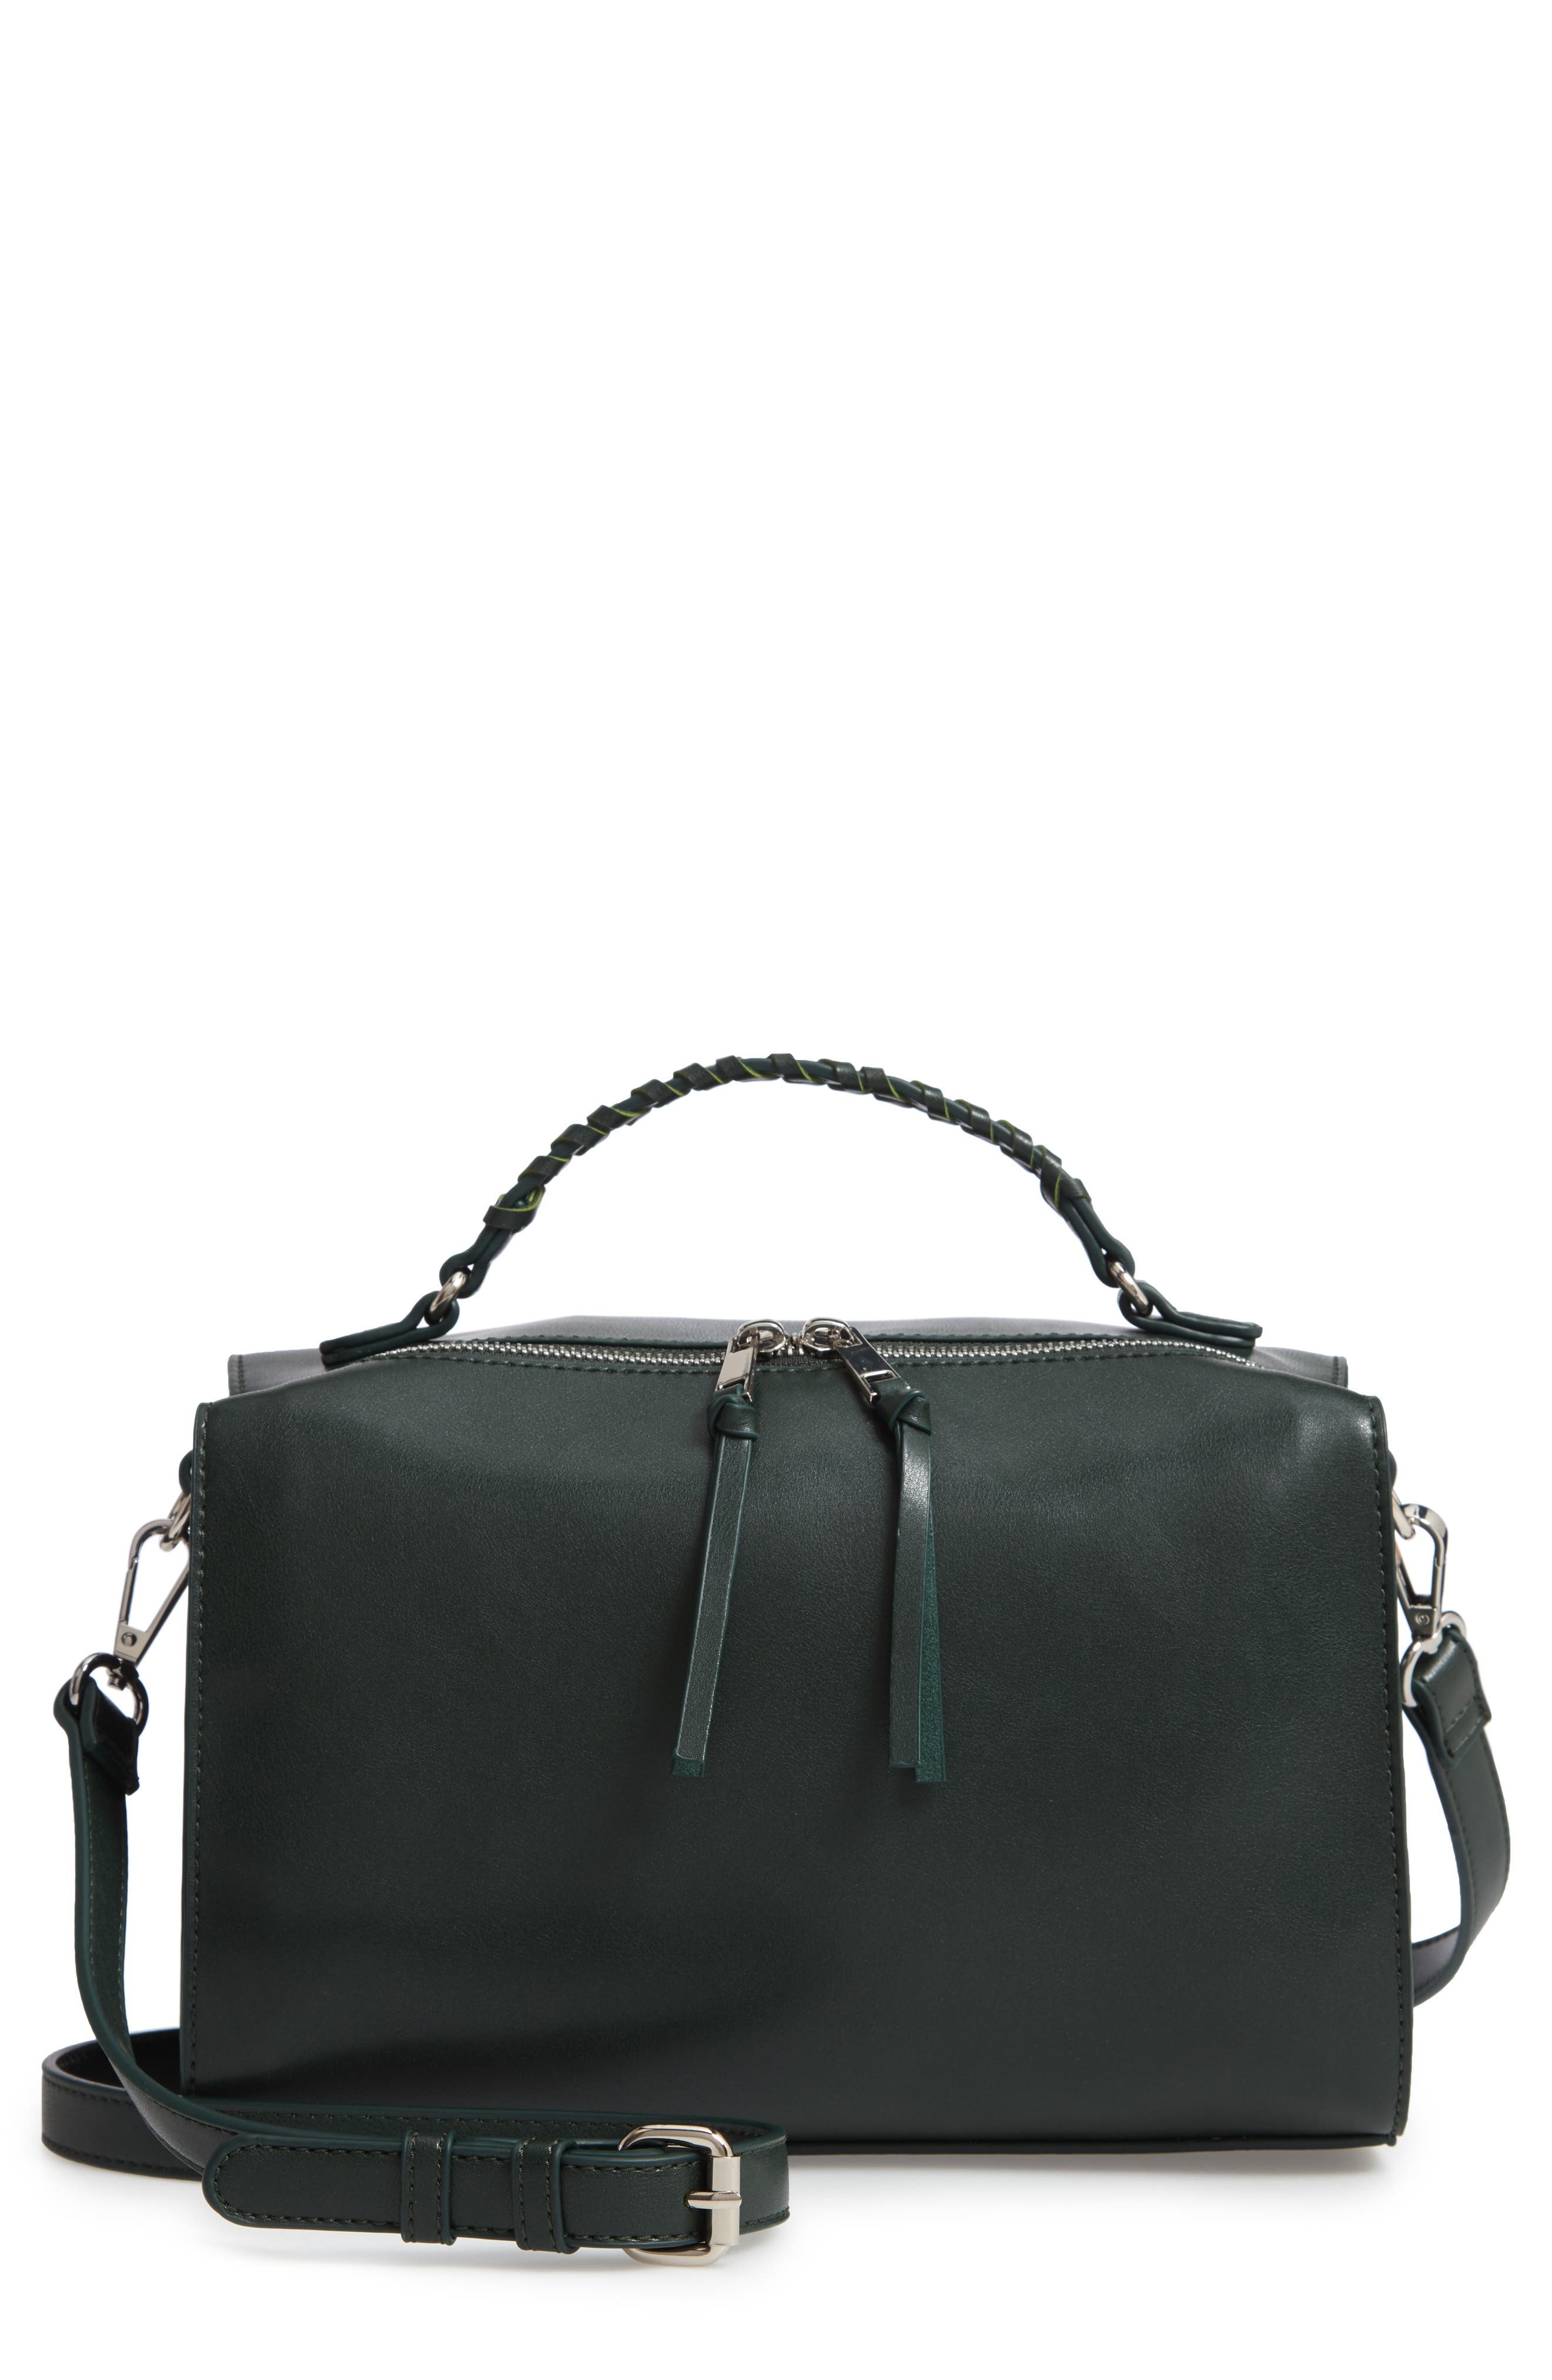 Whipstitch Handle Faux Leather Crossbody Bag,                         Main,                         color, DARK GREEN